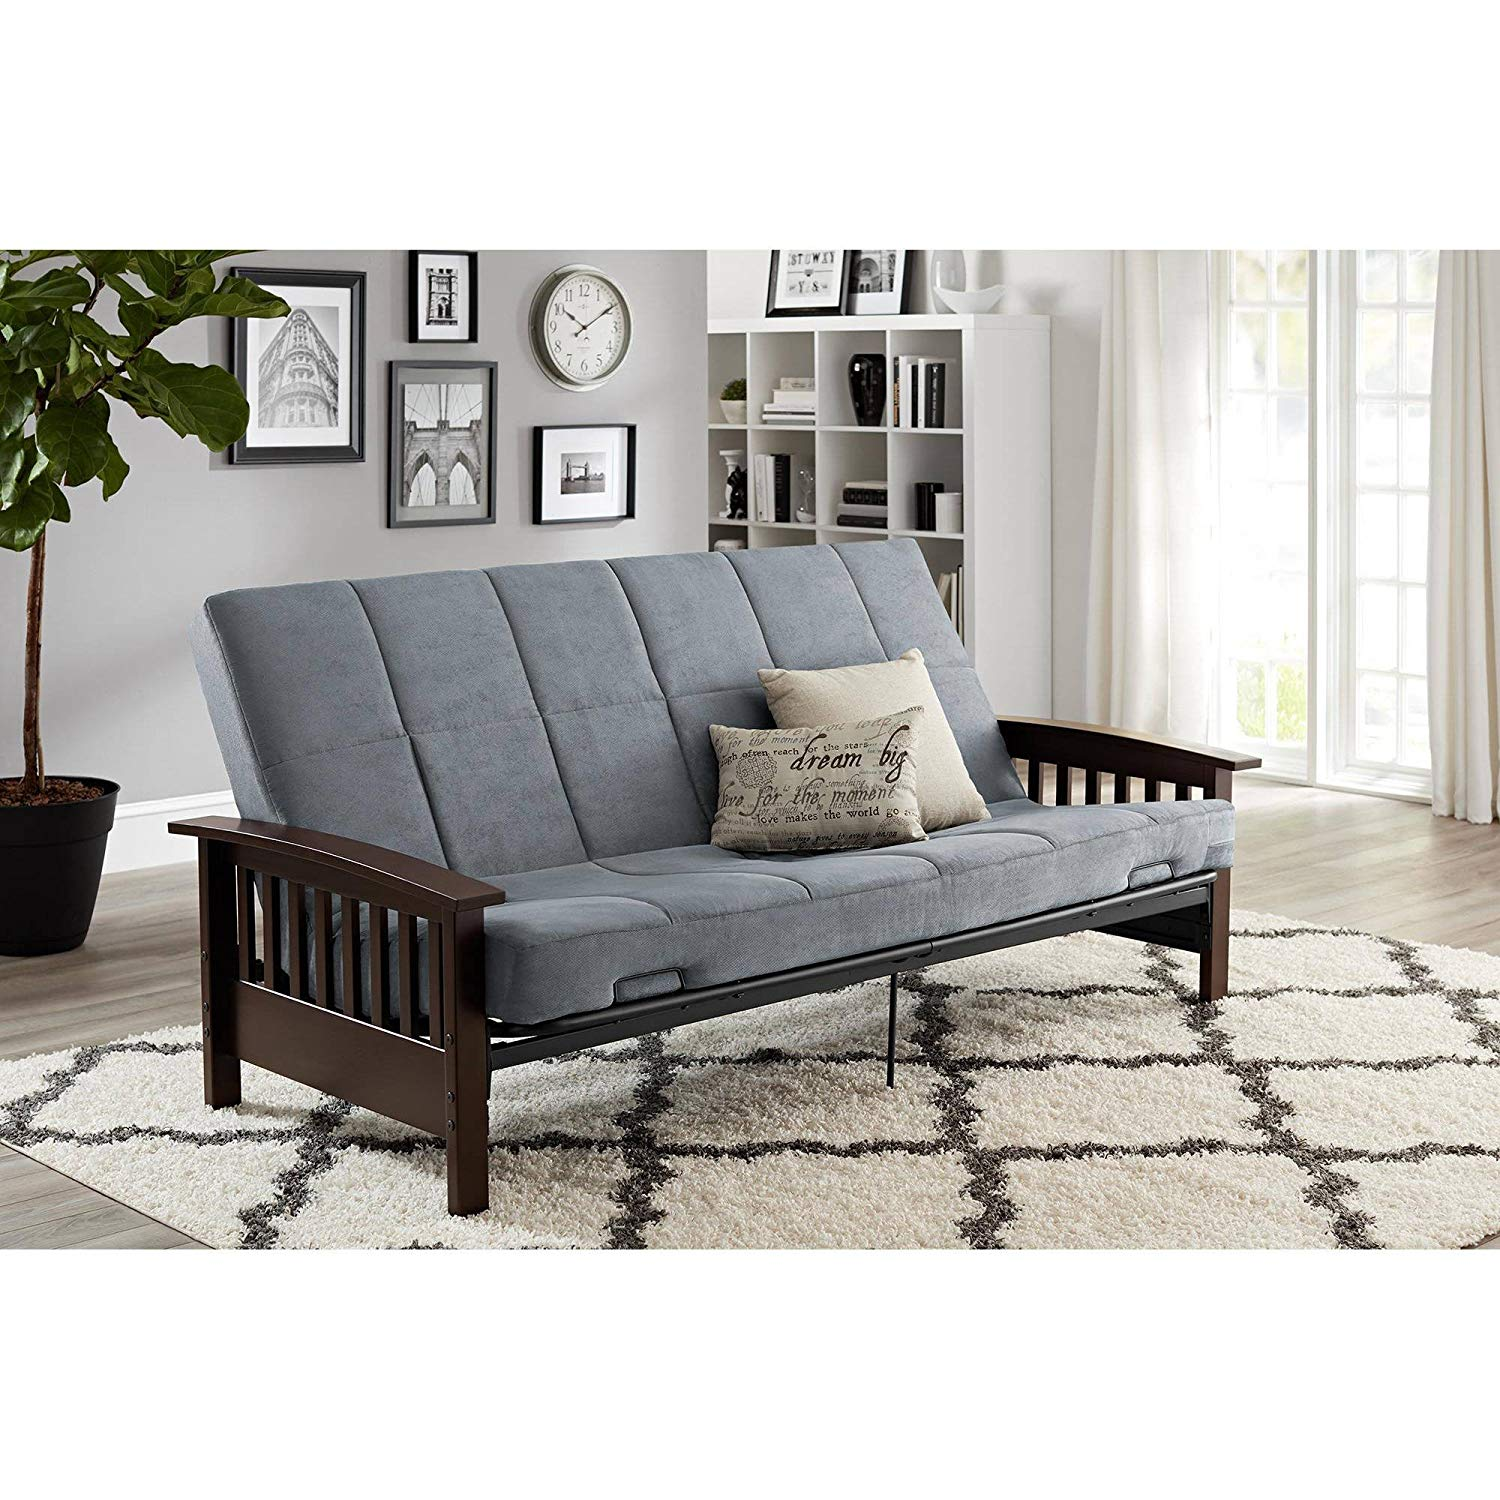 Gray Wood Arm Futon, Convertible to Full Size Sleeper, Solid Wood Arms, Padding, Reclinable Metal Mesh Frame, Retainer Clips, Bundle with Our Expert Guide with Tips for Home Arrangement